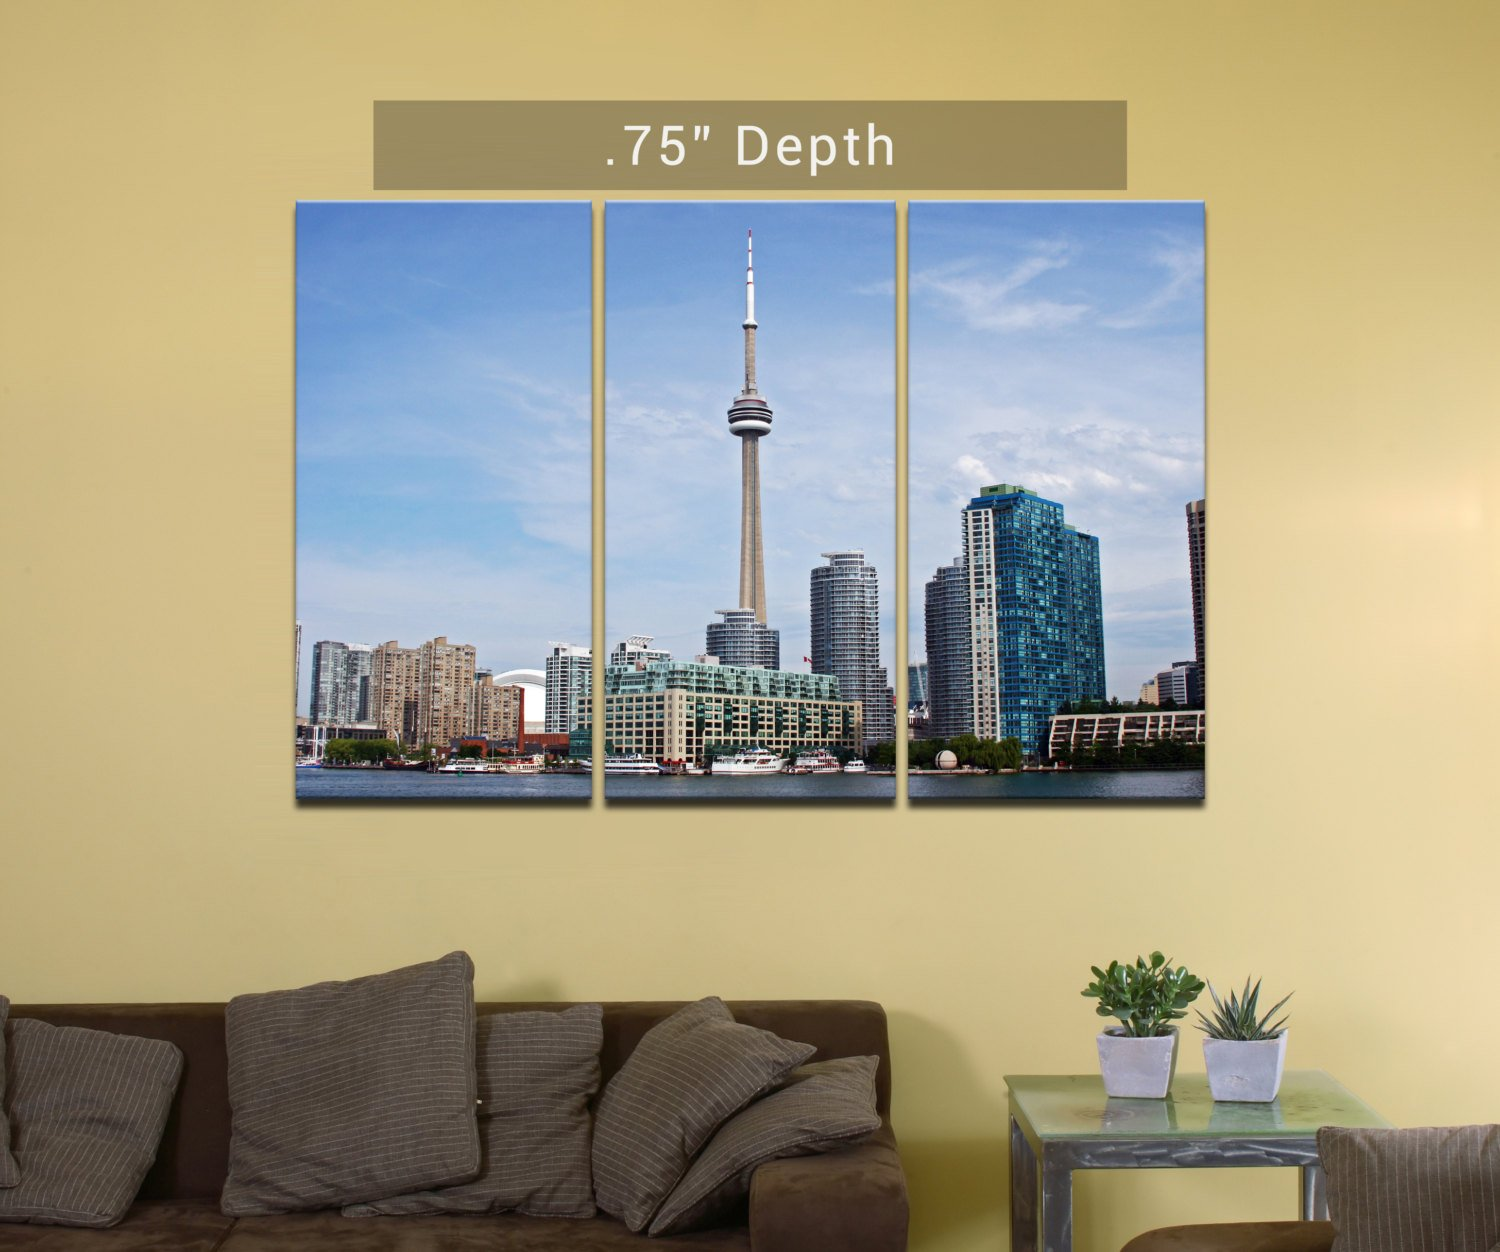 Toronto Skyline / CN Tower – 3 Canvas Split (.75″ Depth)